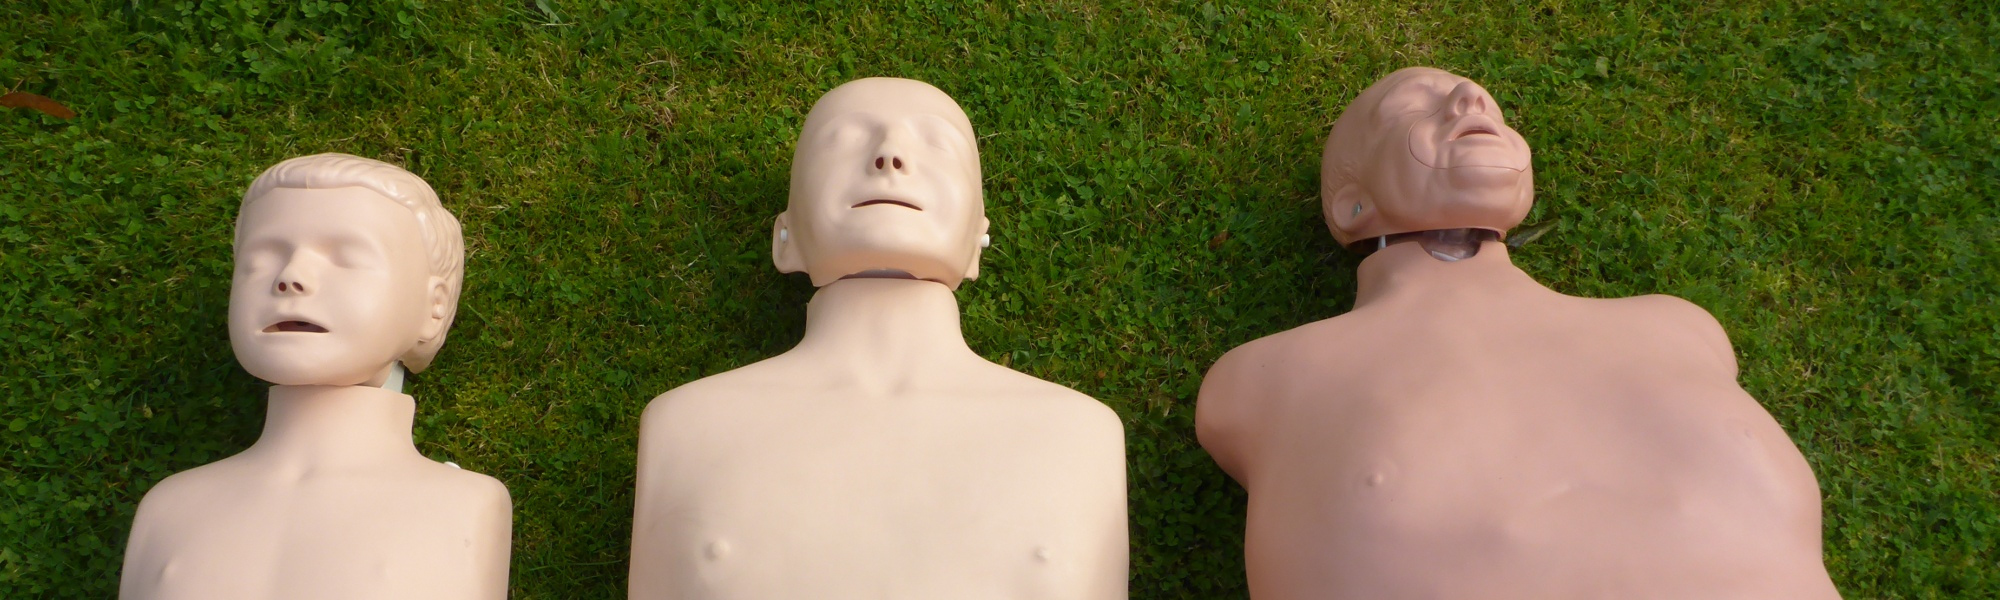 First Aid Articles